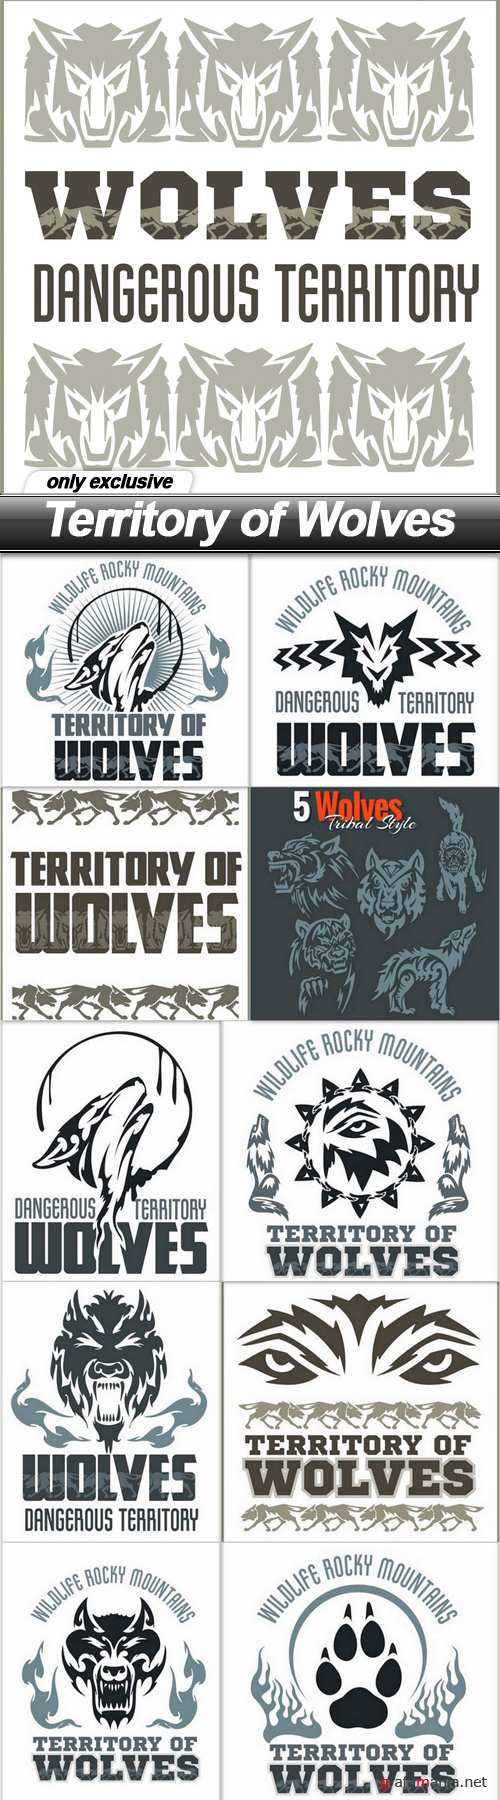 Territory of Wolves - 11 EPS